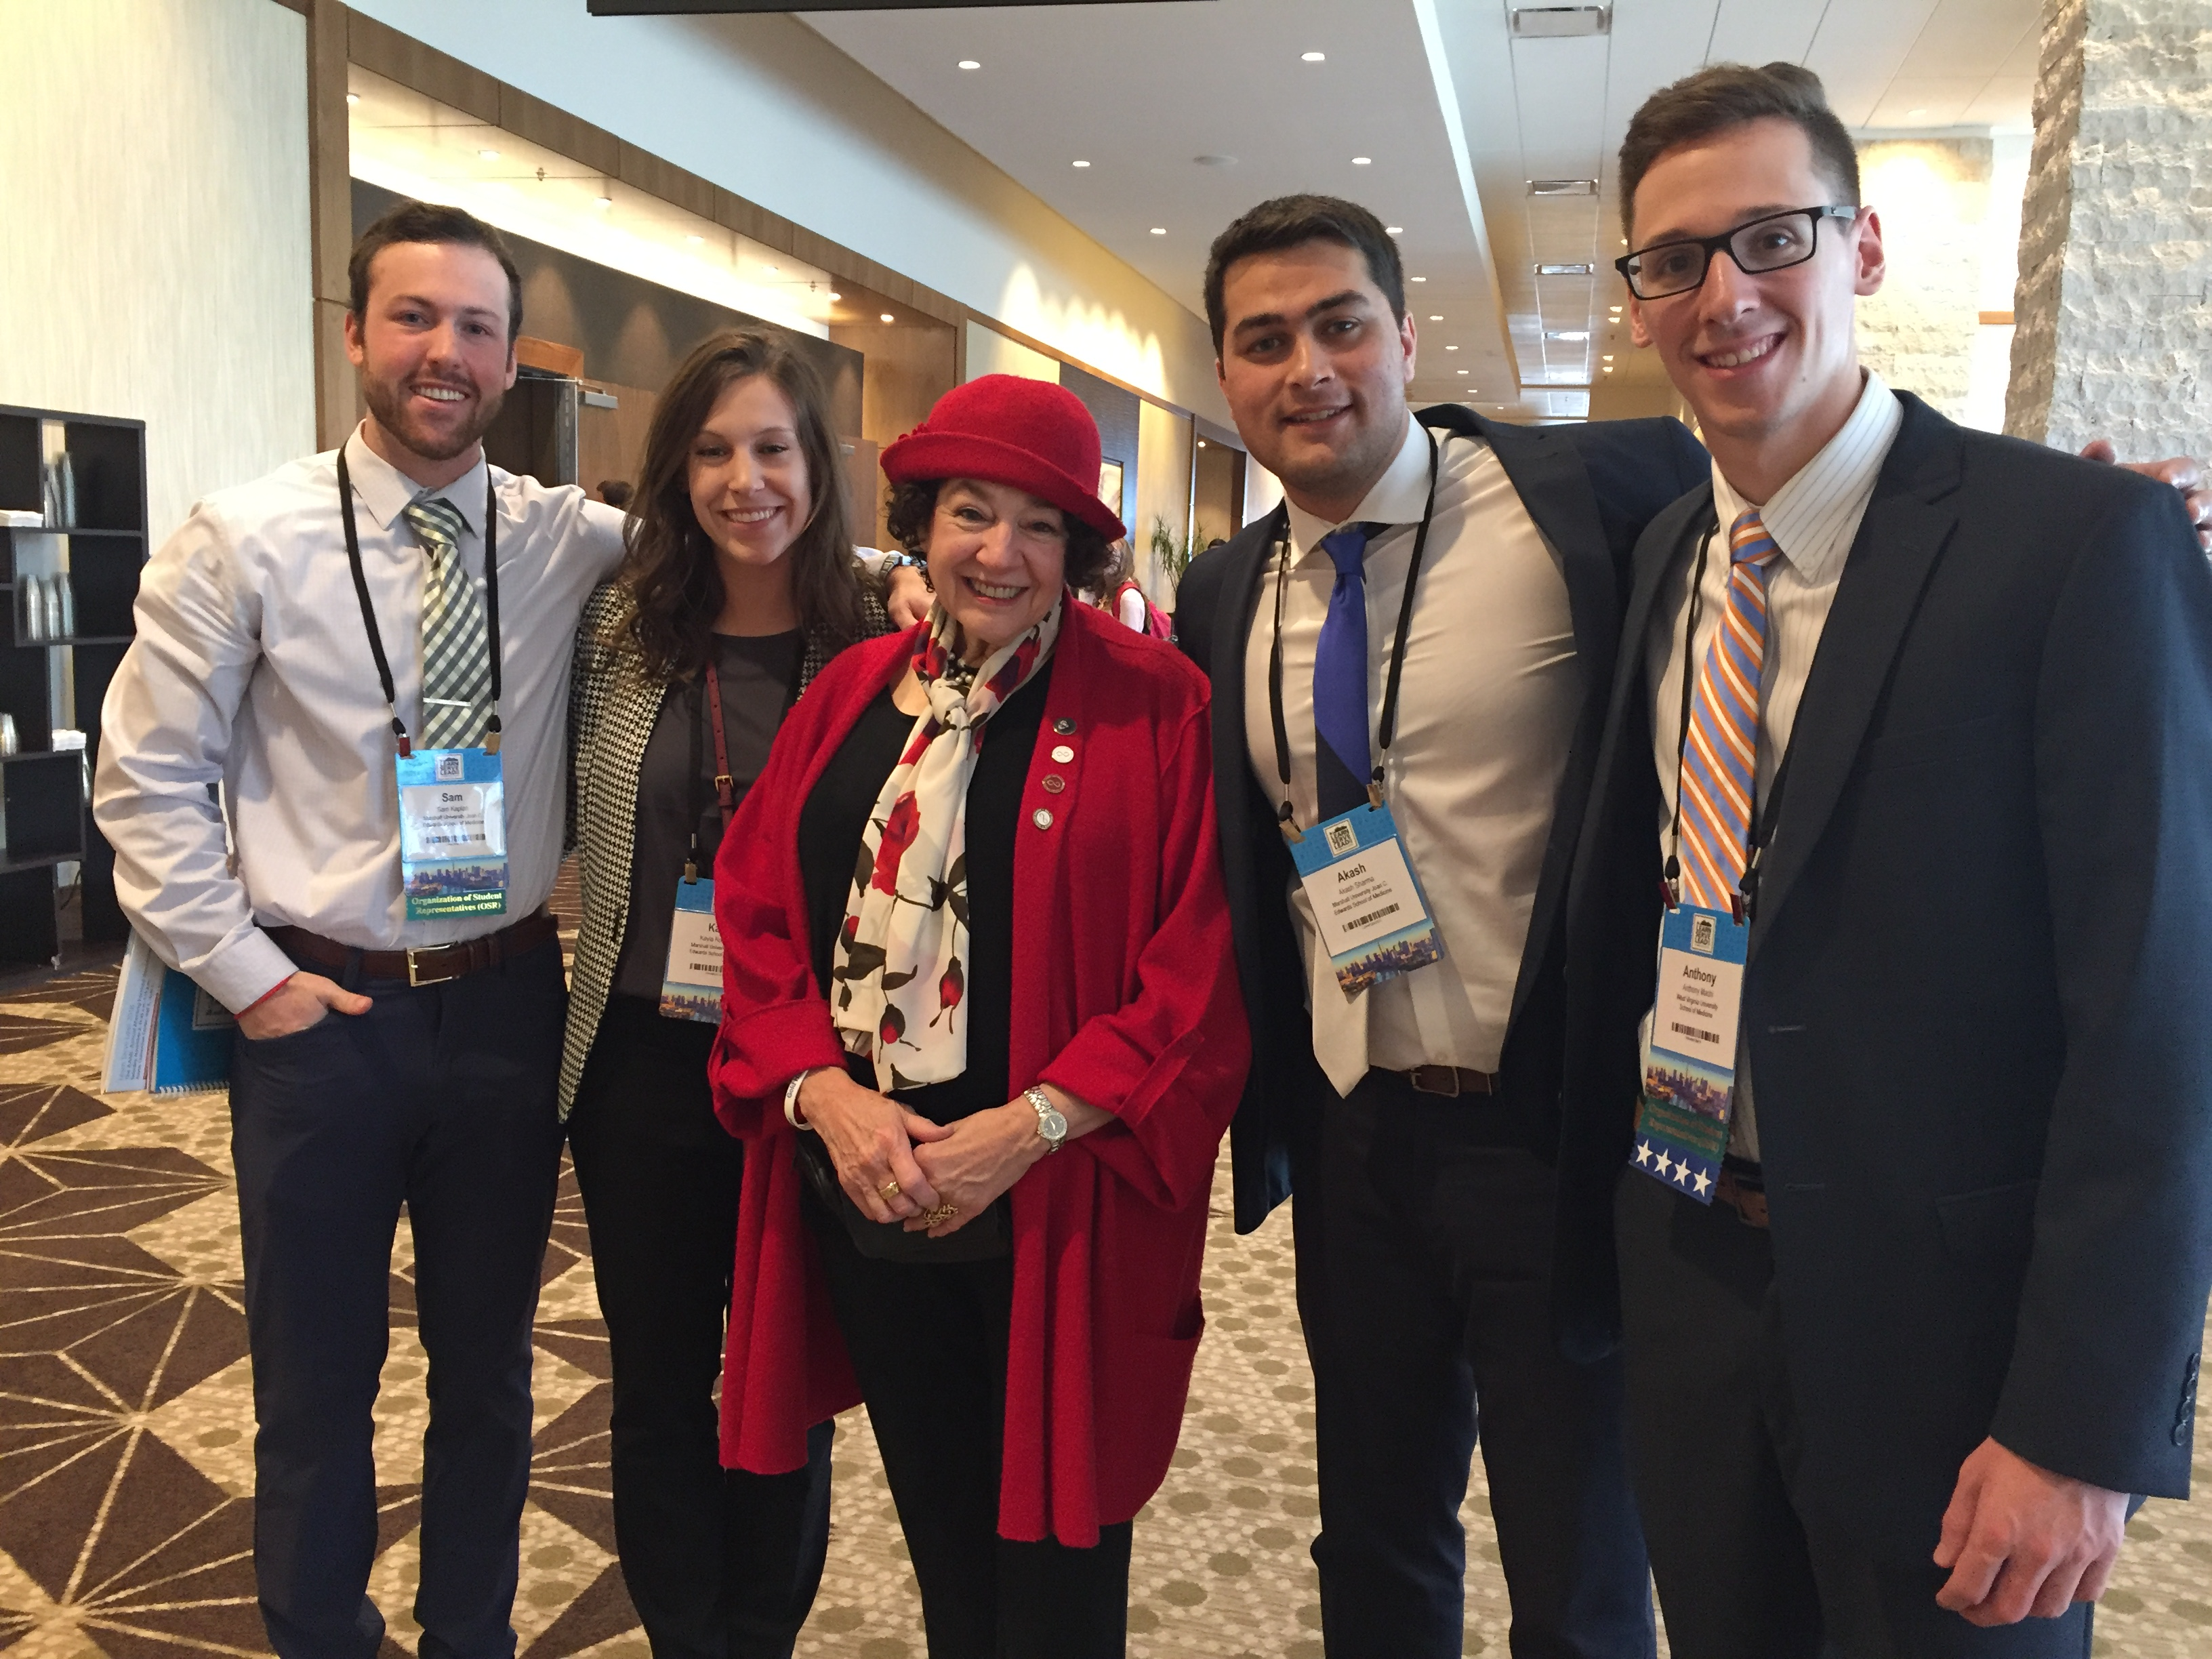 Our co-founder Dr. Sandra Gold with four amazing medical students at #AAMC18 ahead of the annual OSR Gold Foundation Humanism in Medicine Award Luncheon on Nov. 2, 2018. From left, Sam Kaplan, Kayla Rodriguez, Akash Sharma from Marshall University, and Anthony Machi from West Virginia University.